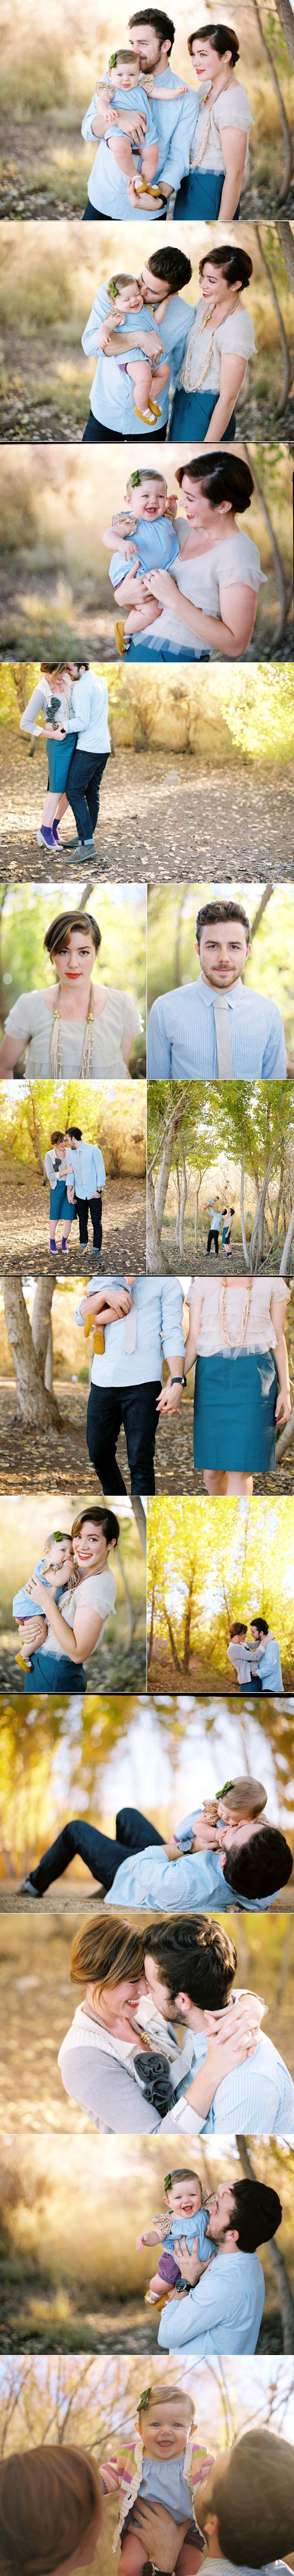 totally want a family photo collage like this!...have I pinned this before? Looks familiar.